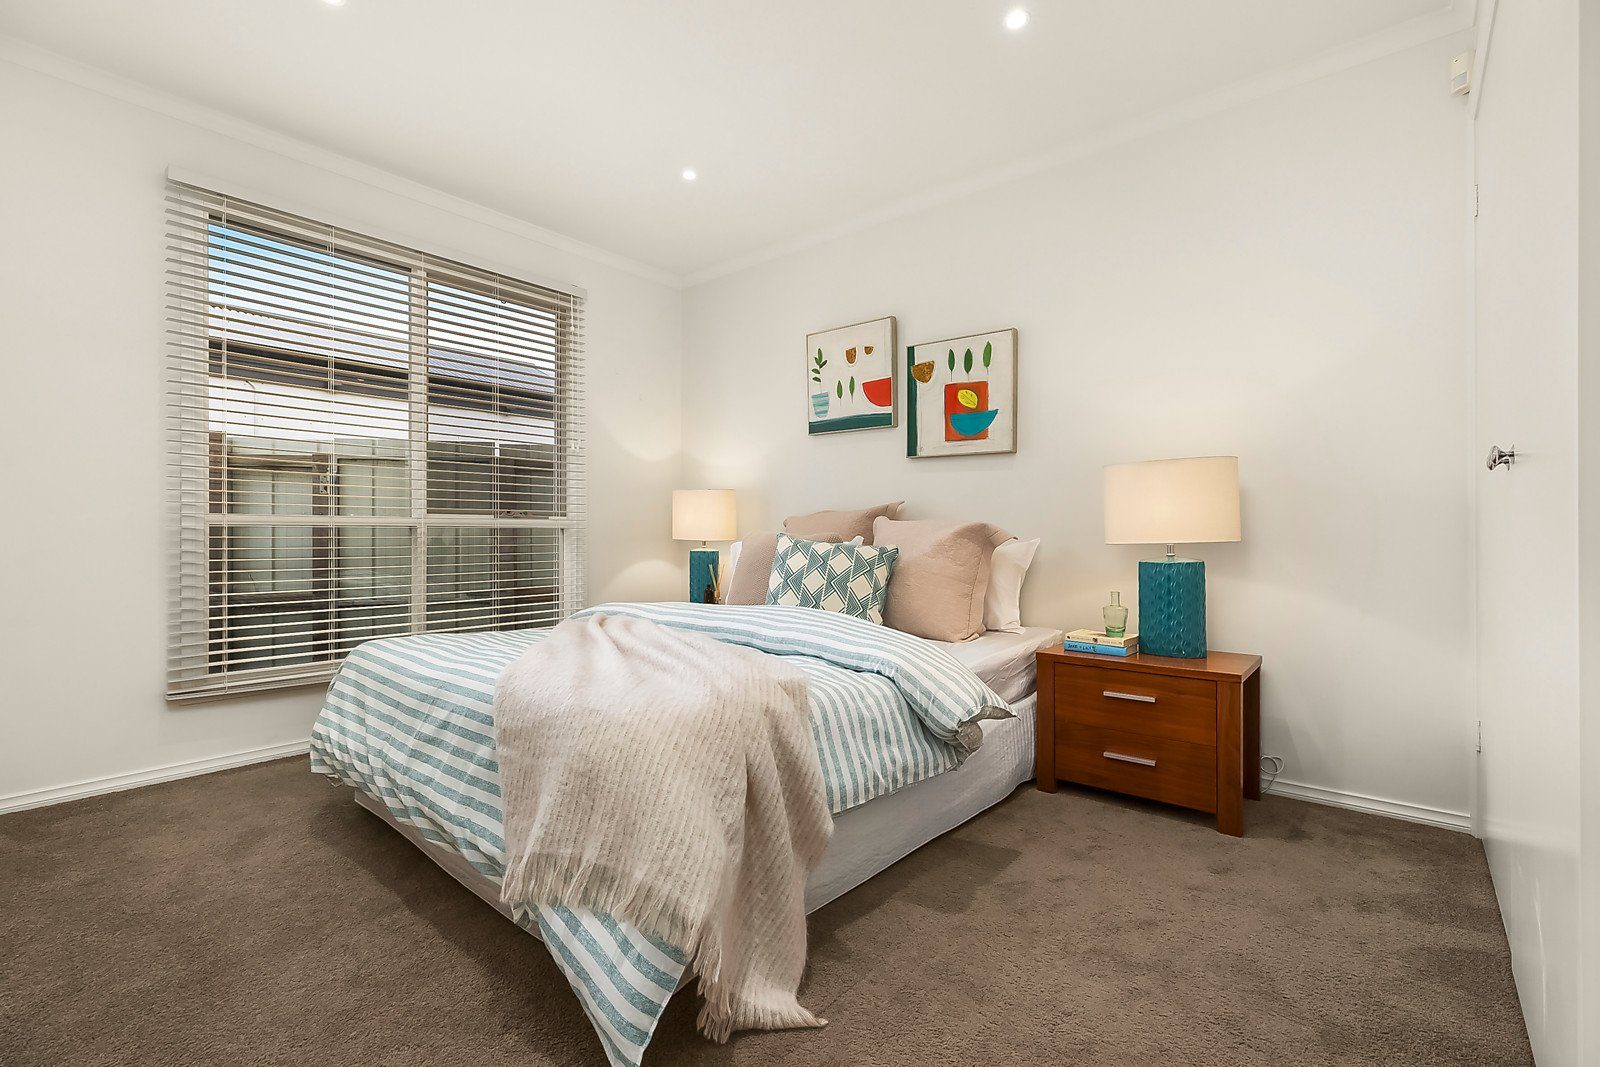 78A Epsom Road, Ascot Vale, VIC, 3032 image 6